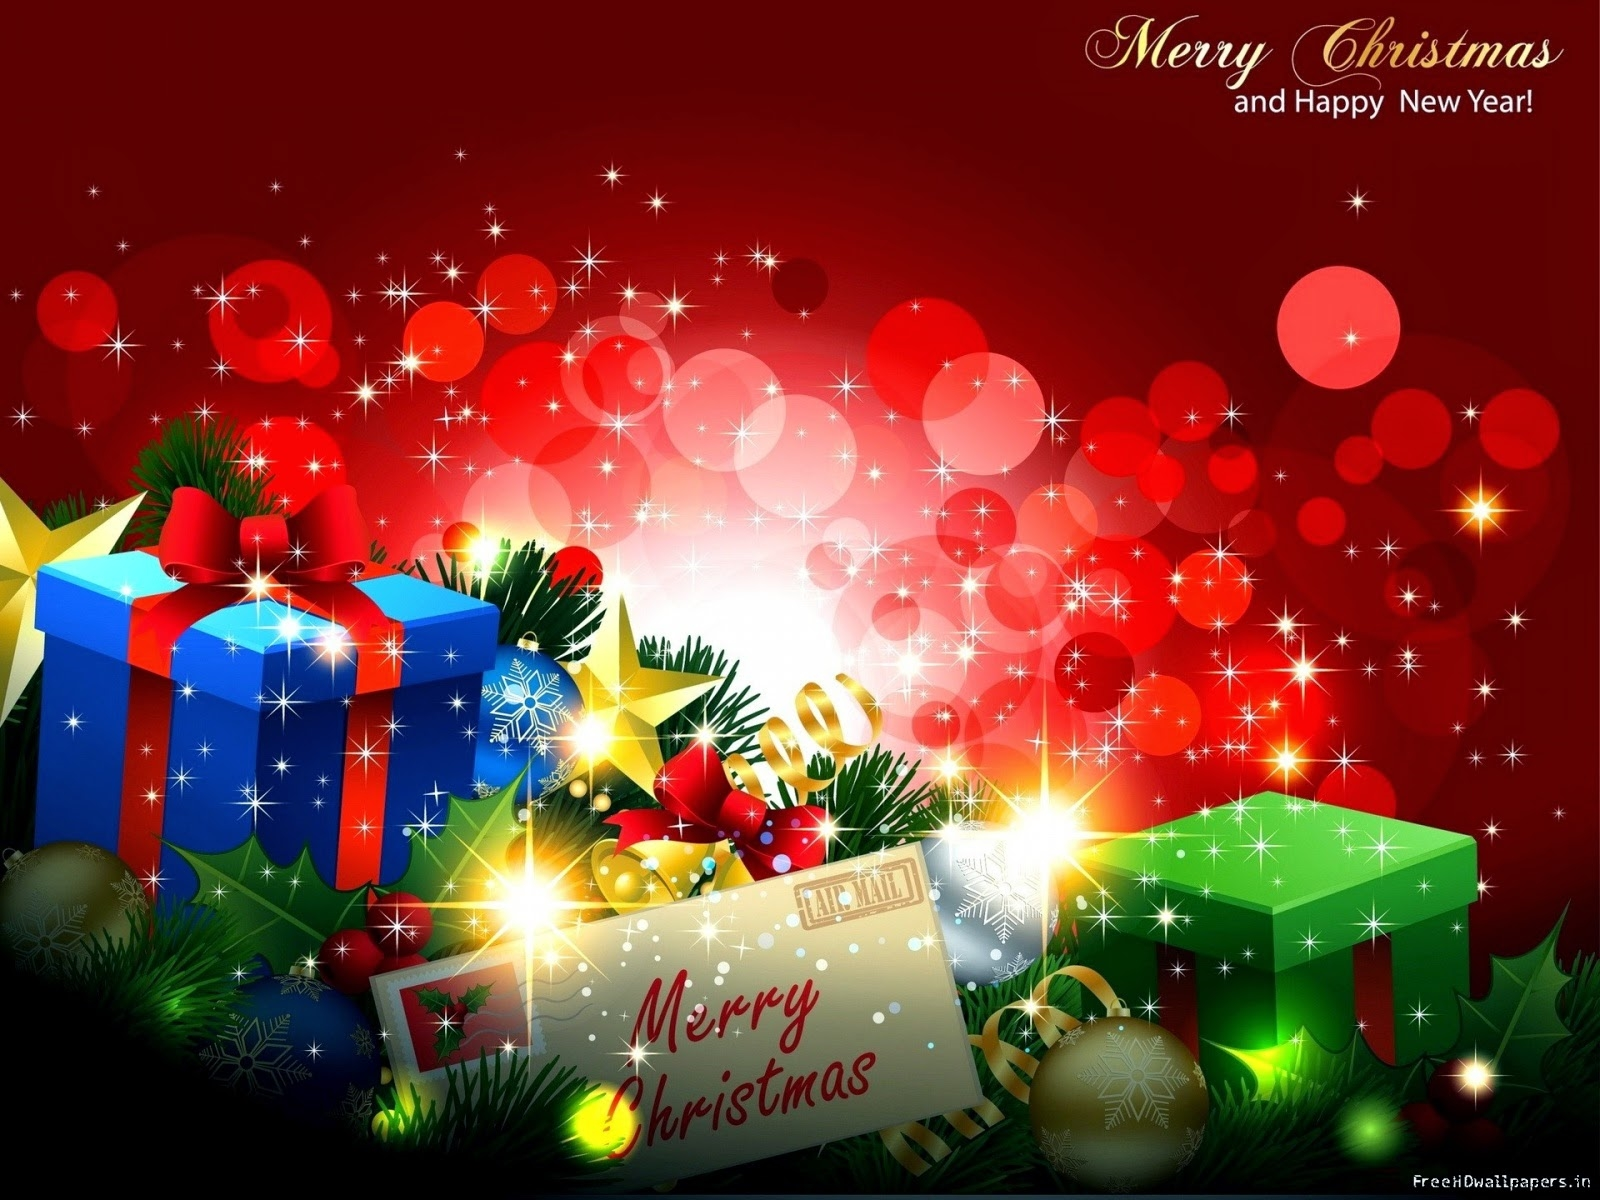 merry christmas happy new year greetings